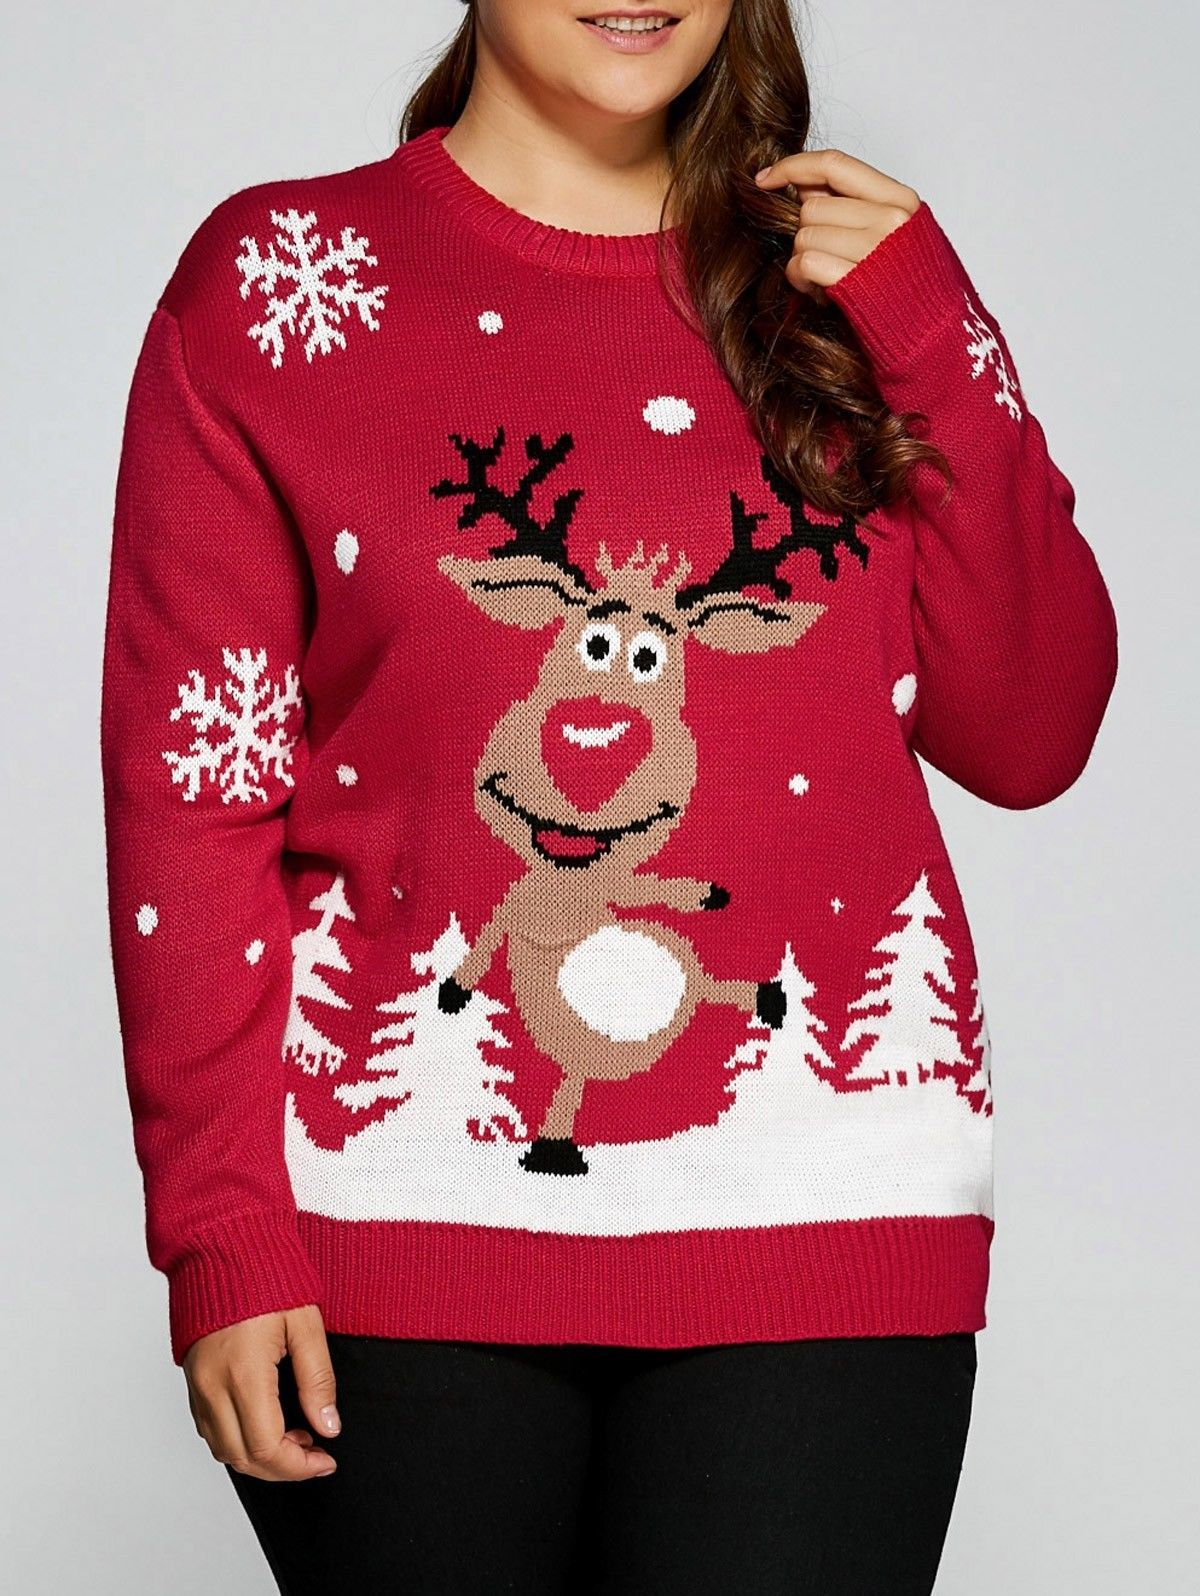 lady xmas plus size knitted pullover sweater reindeer christmas sweaters blouse